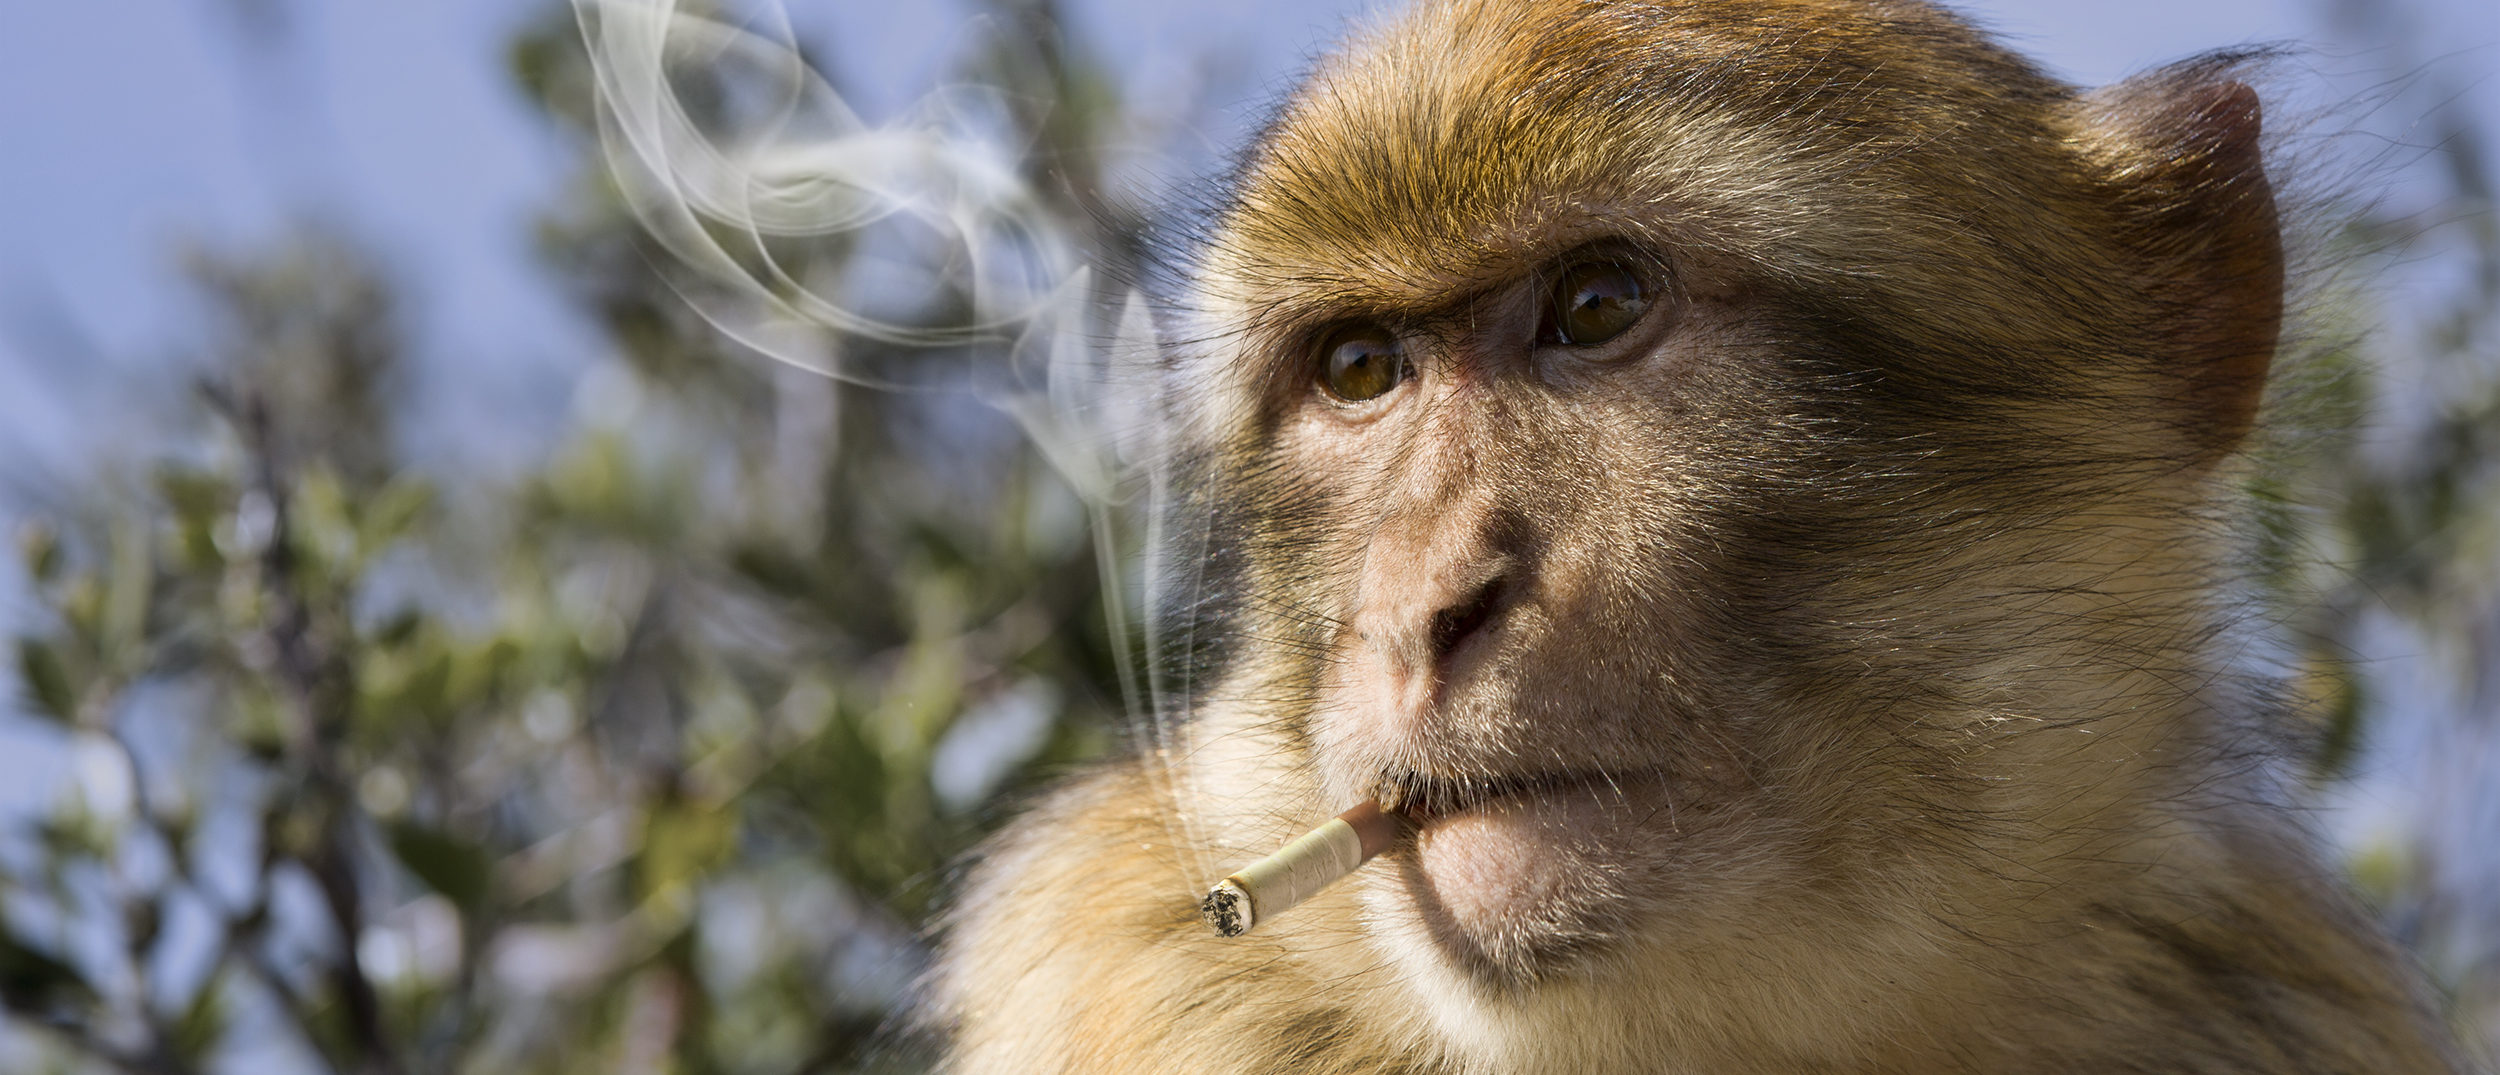 Monkey smoking a cigarette (Photo via Shutterstock)